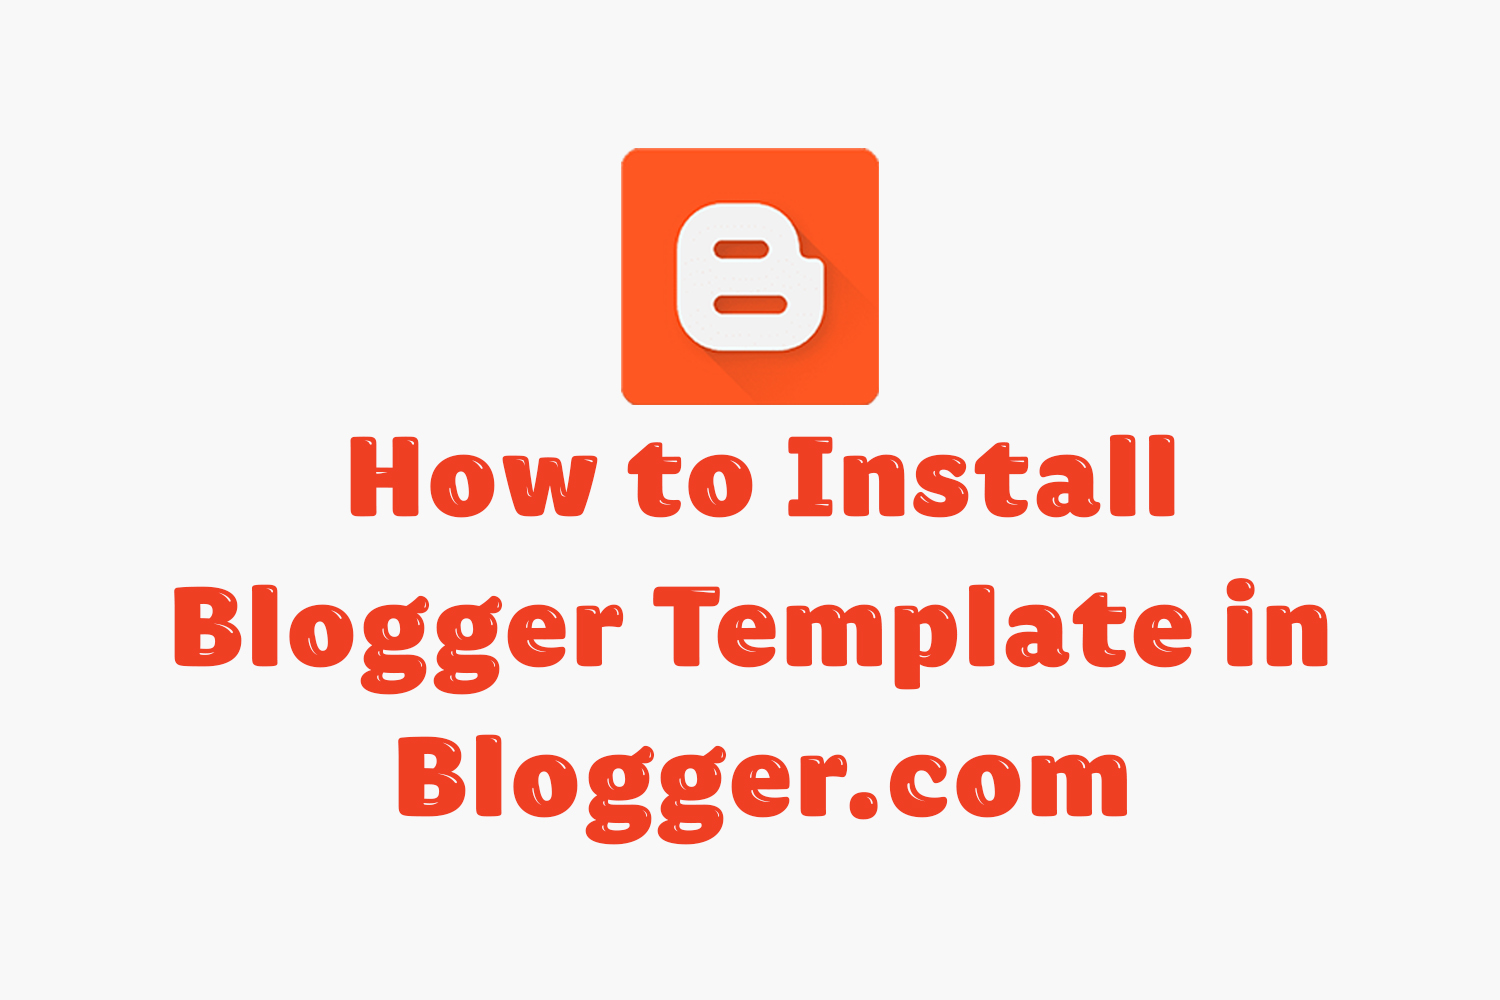 Install a Blogger Template